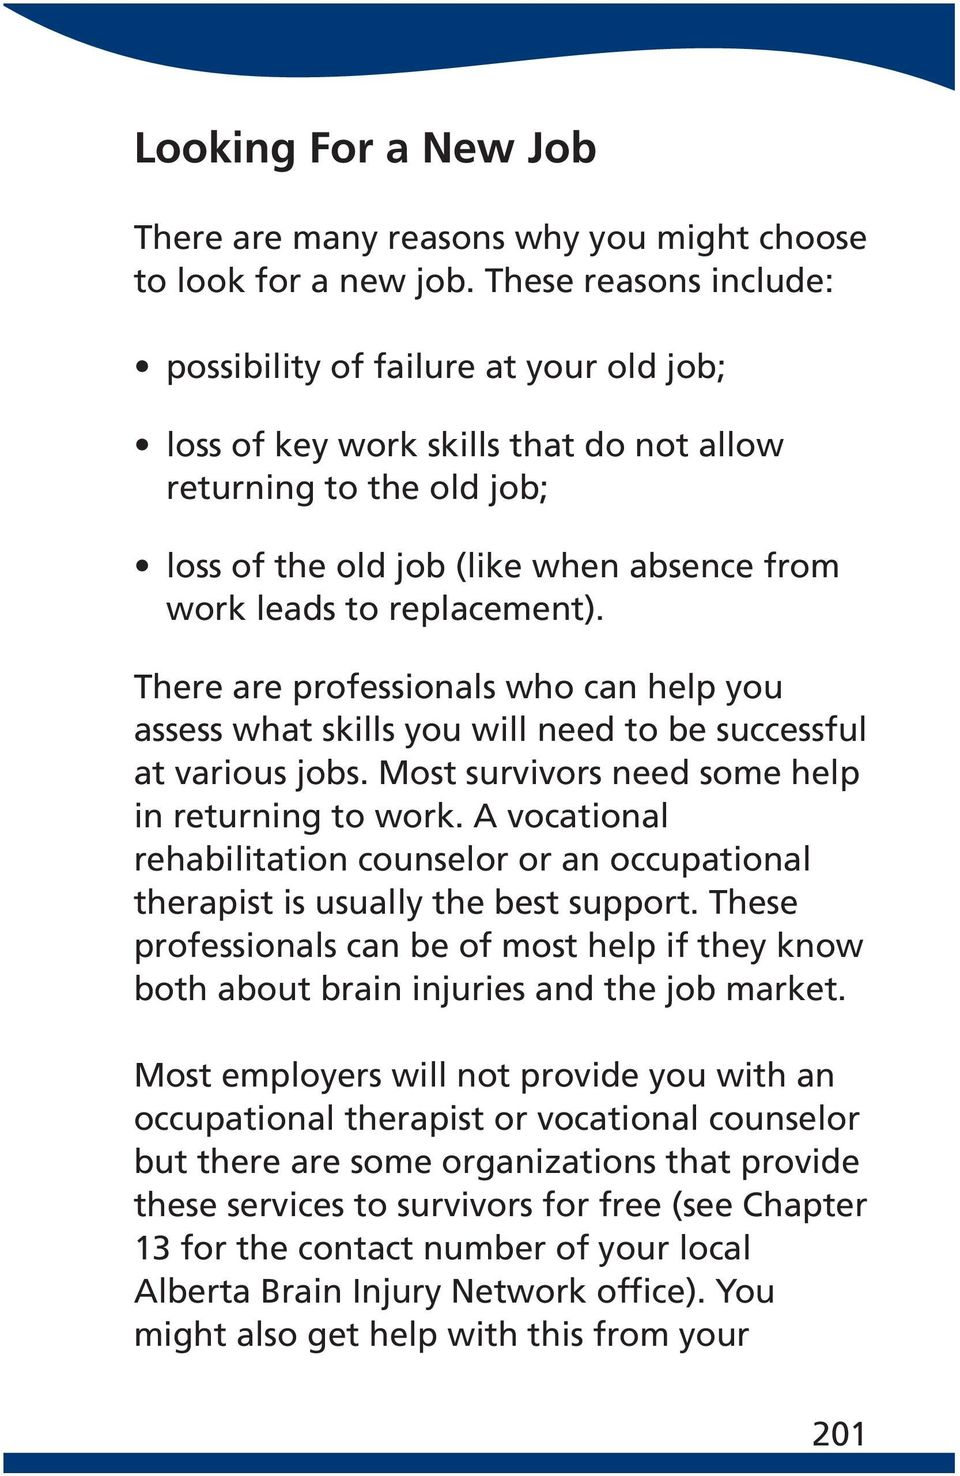 replacement). There are professionals who can help you assess what skills you will need to be successful at various jobs. Most survivors need some help in returning to work.